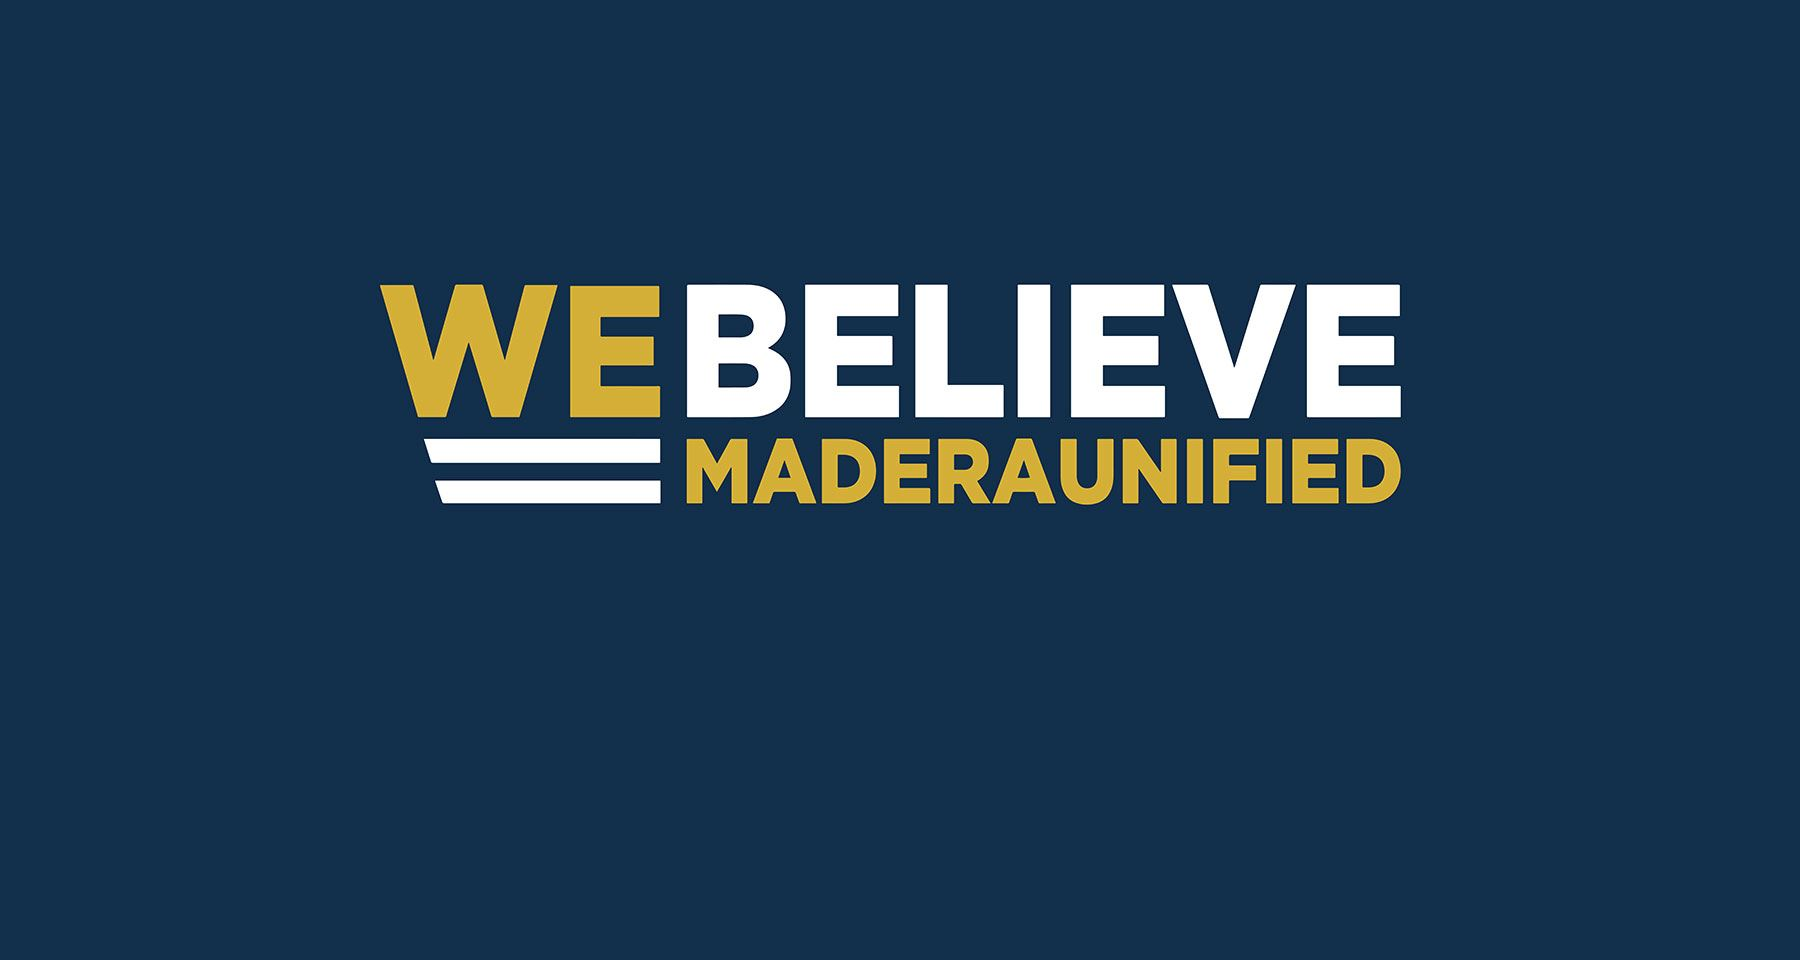 MUSD                                                                        We Believe Videos